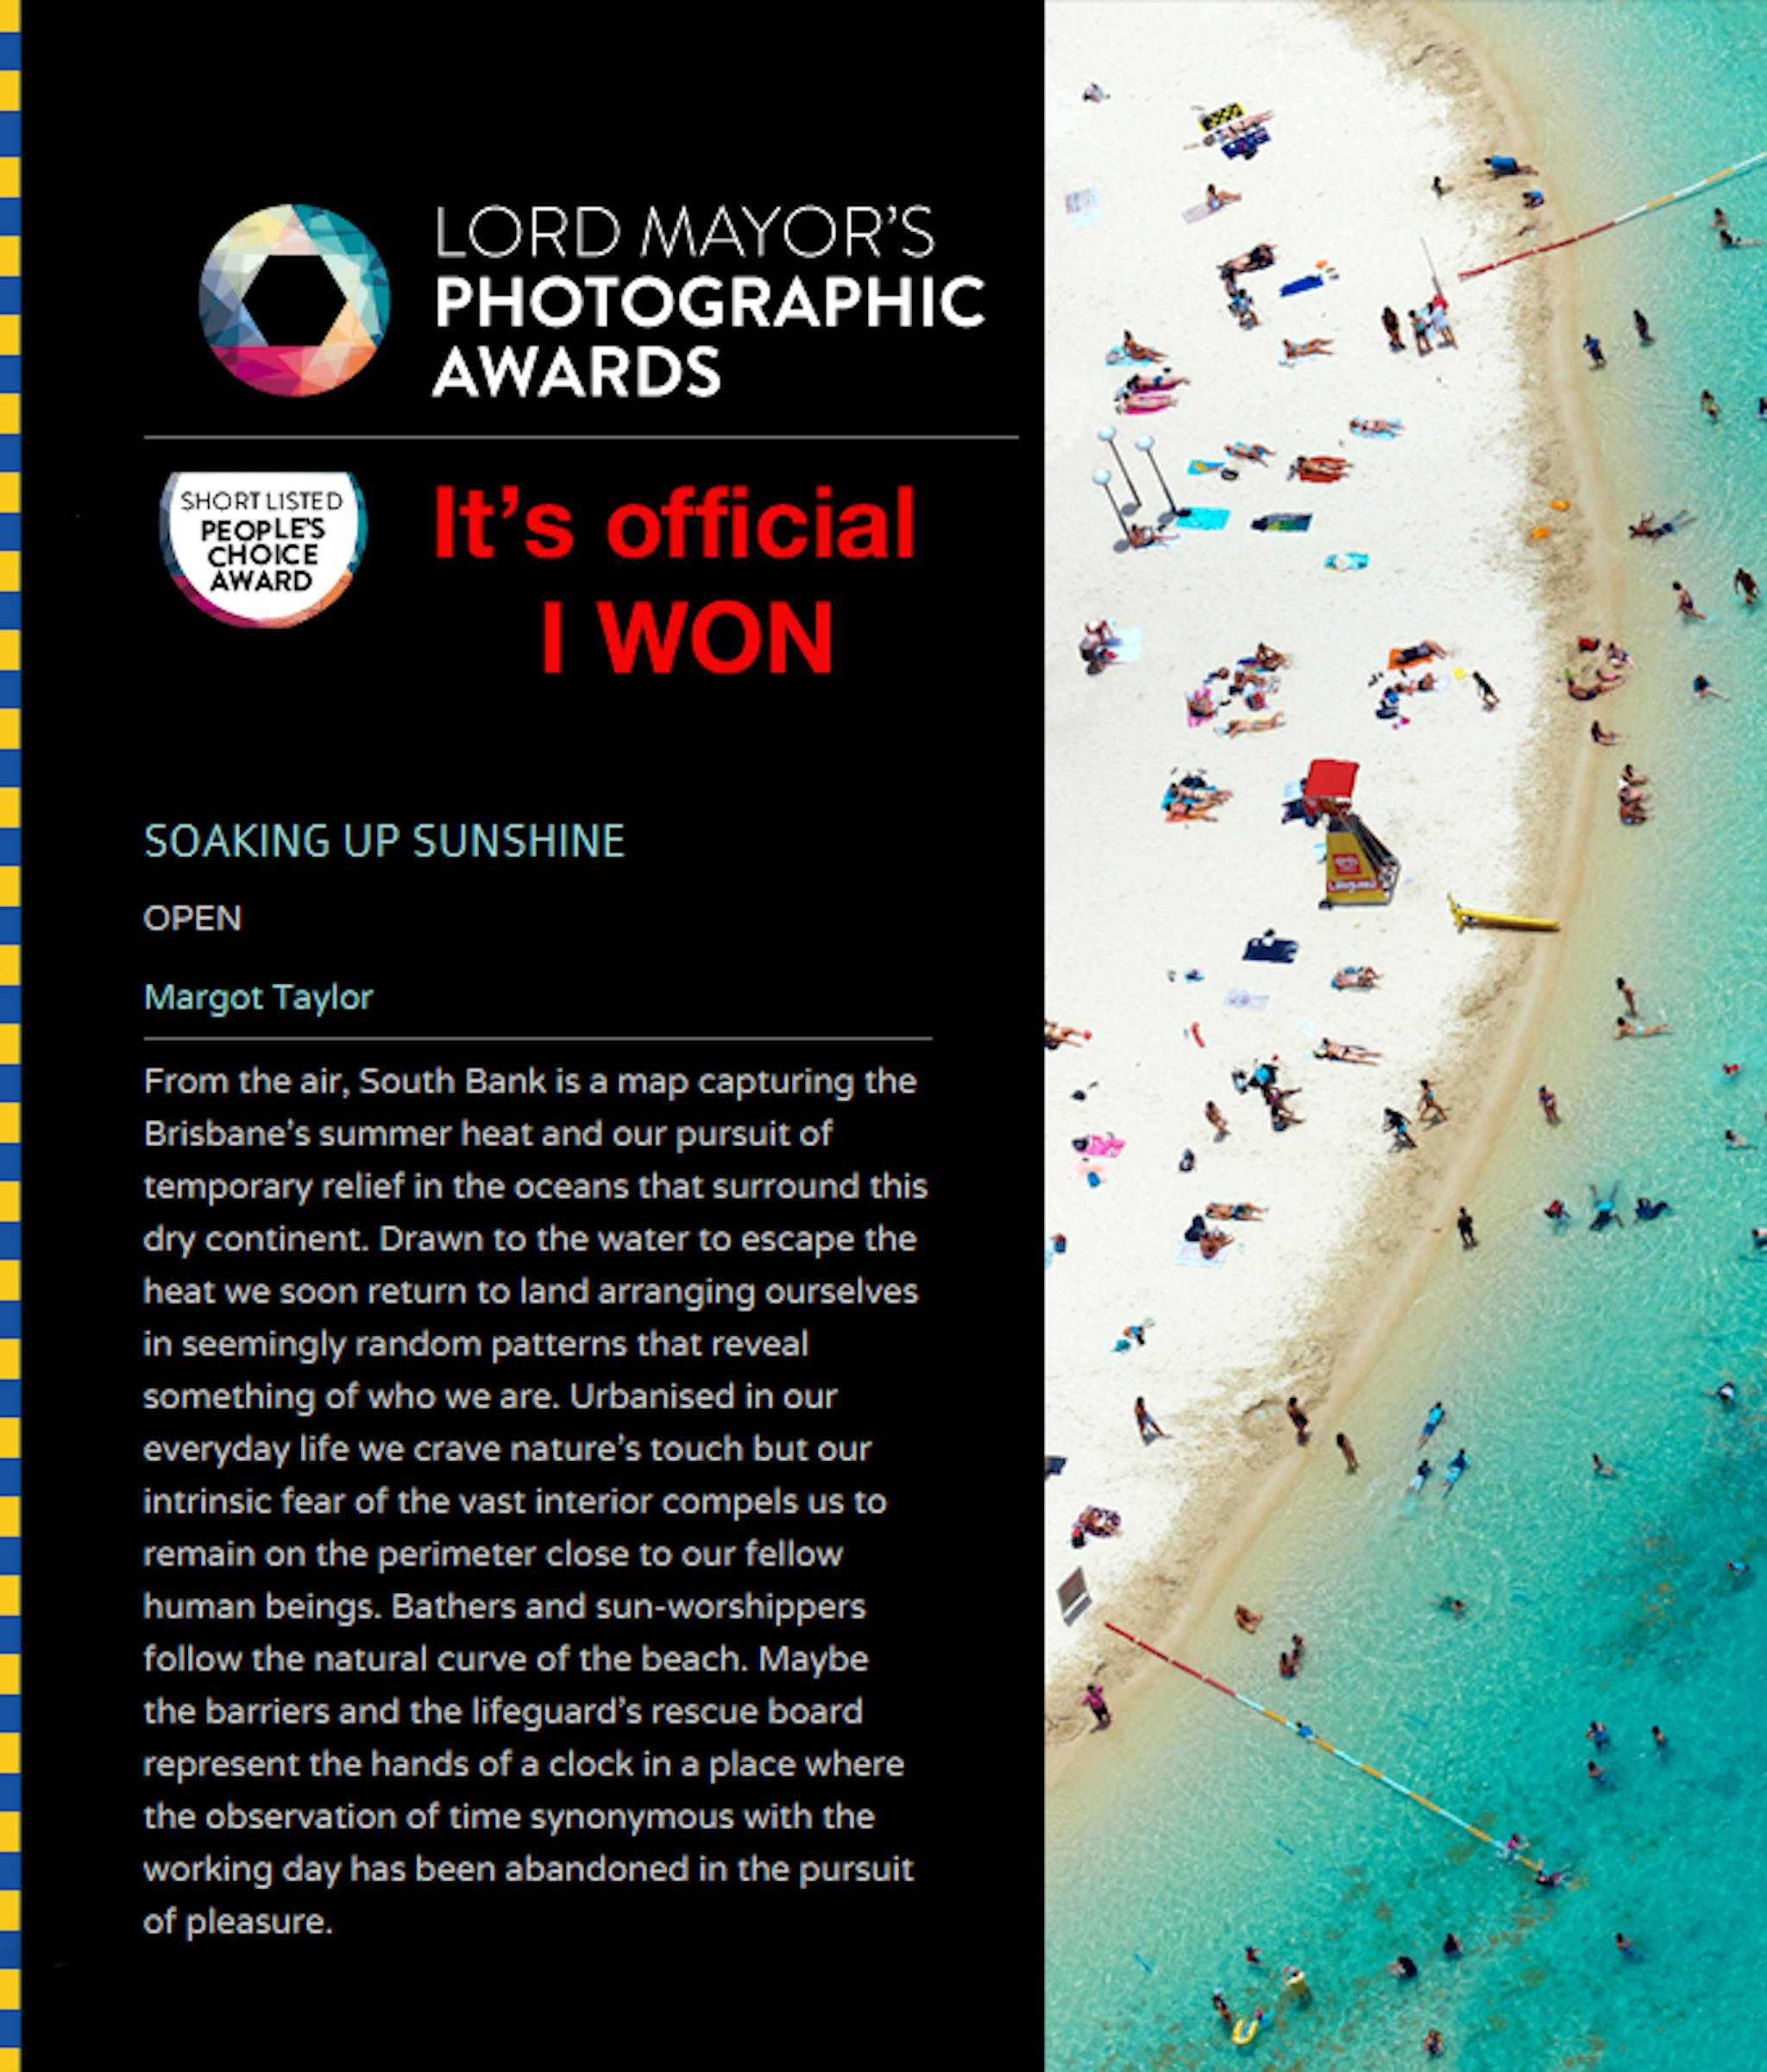 Winner of 2013 Lord Mayors Photographic Awards - People